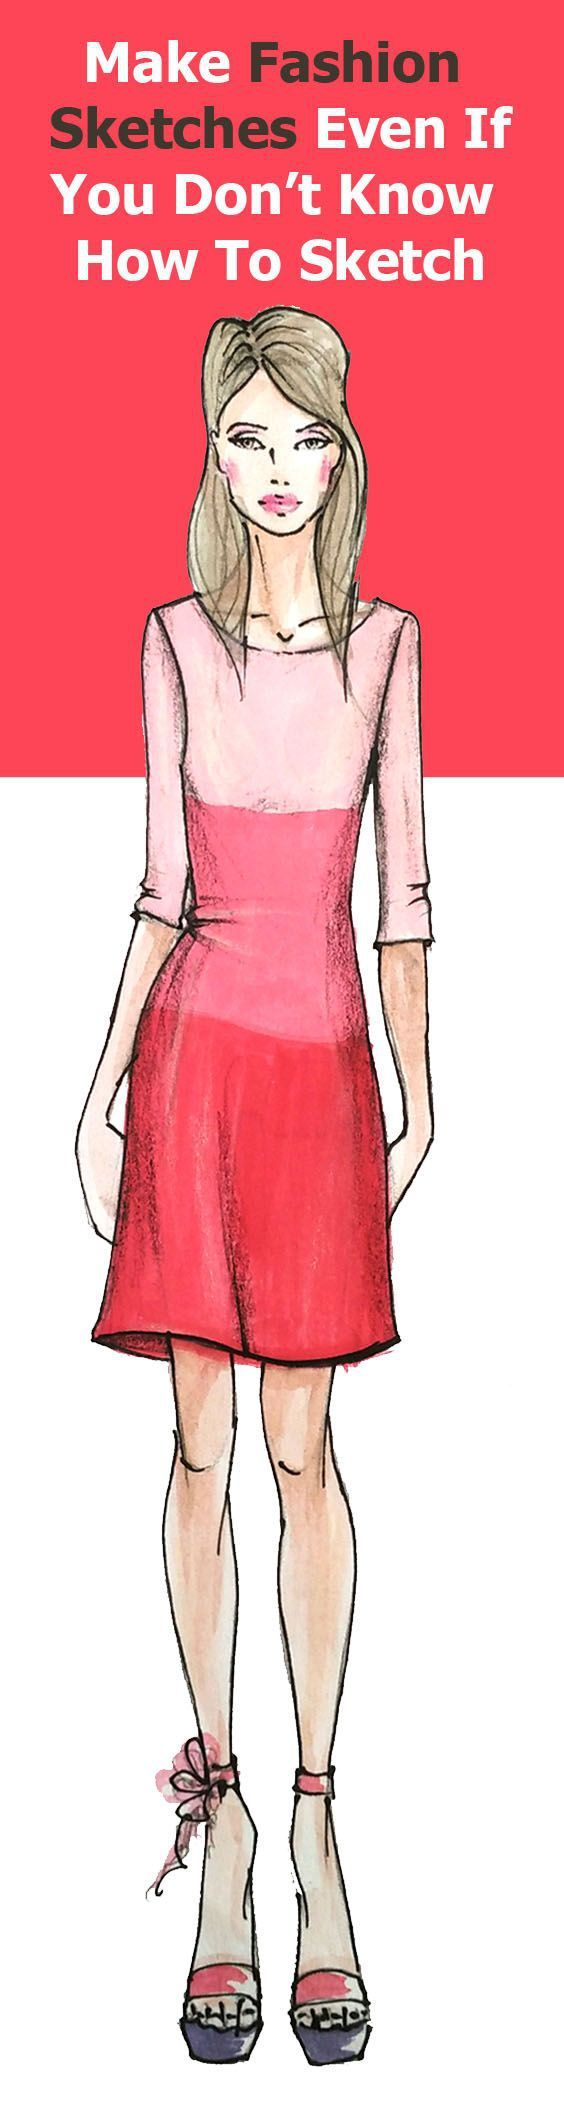 Lear how to make fashion design sketches step by step quickly with this fashion illustration tutorial and free fashion templates downloads. let's go!